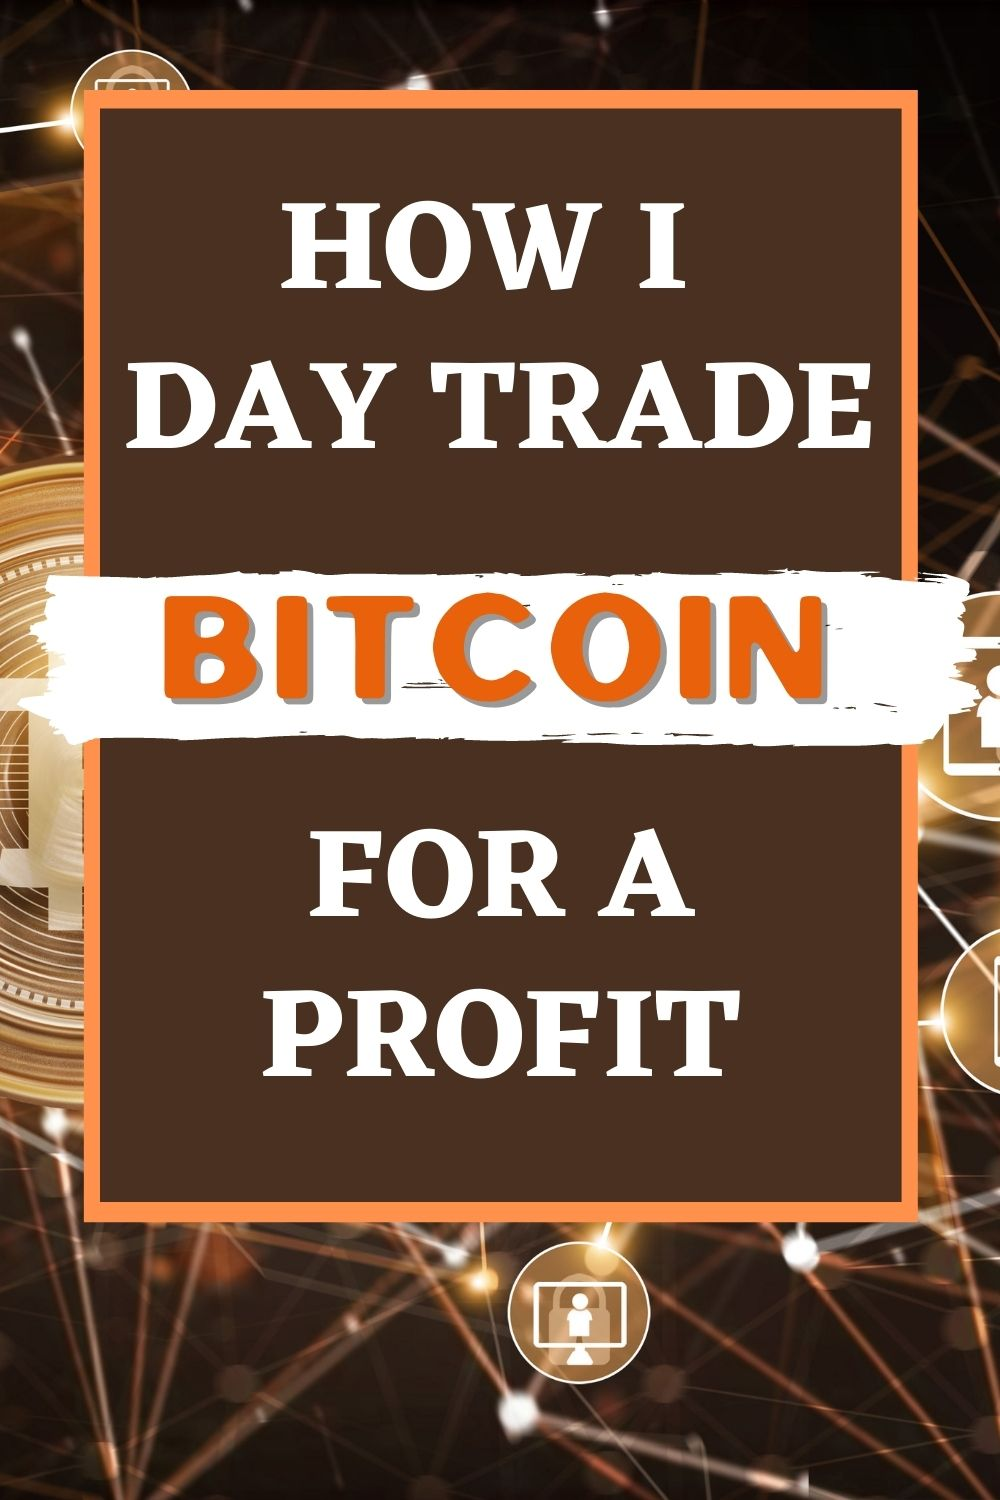 How I Day Trade Bitcoin on Tastyworks For a Profit